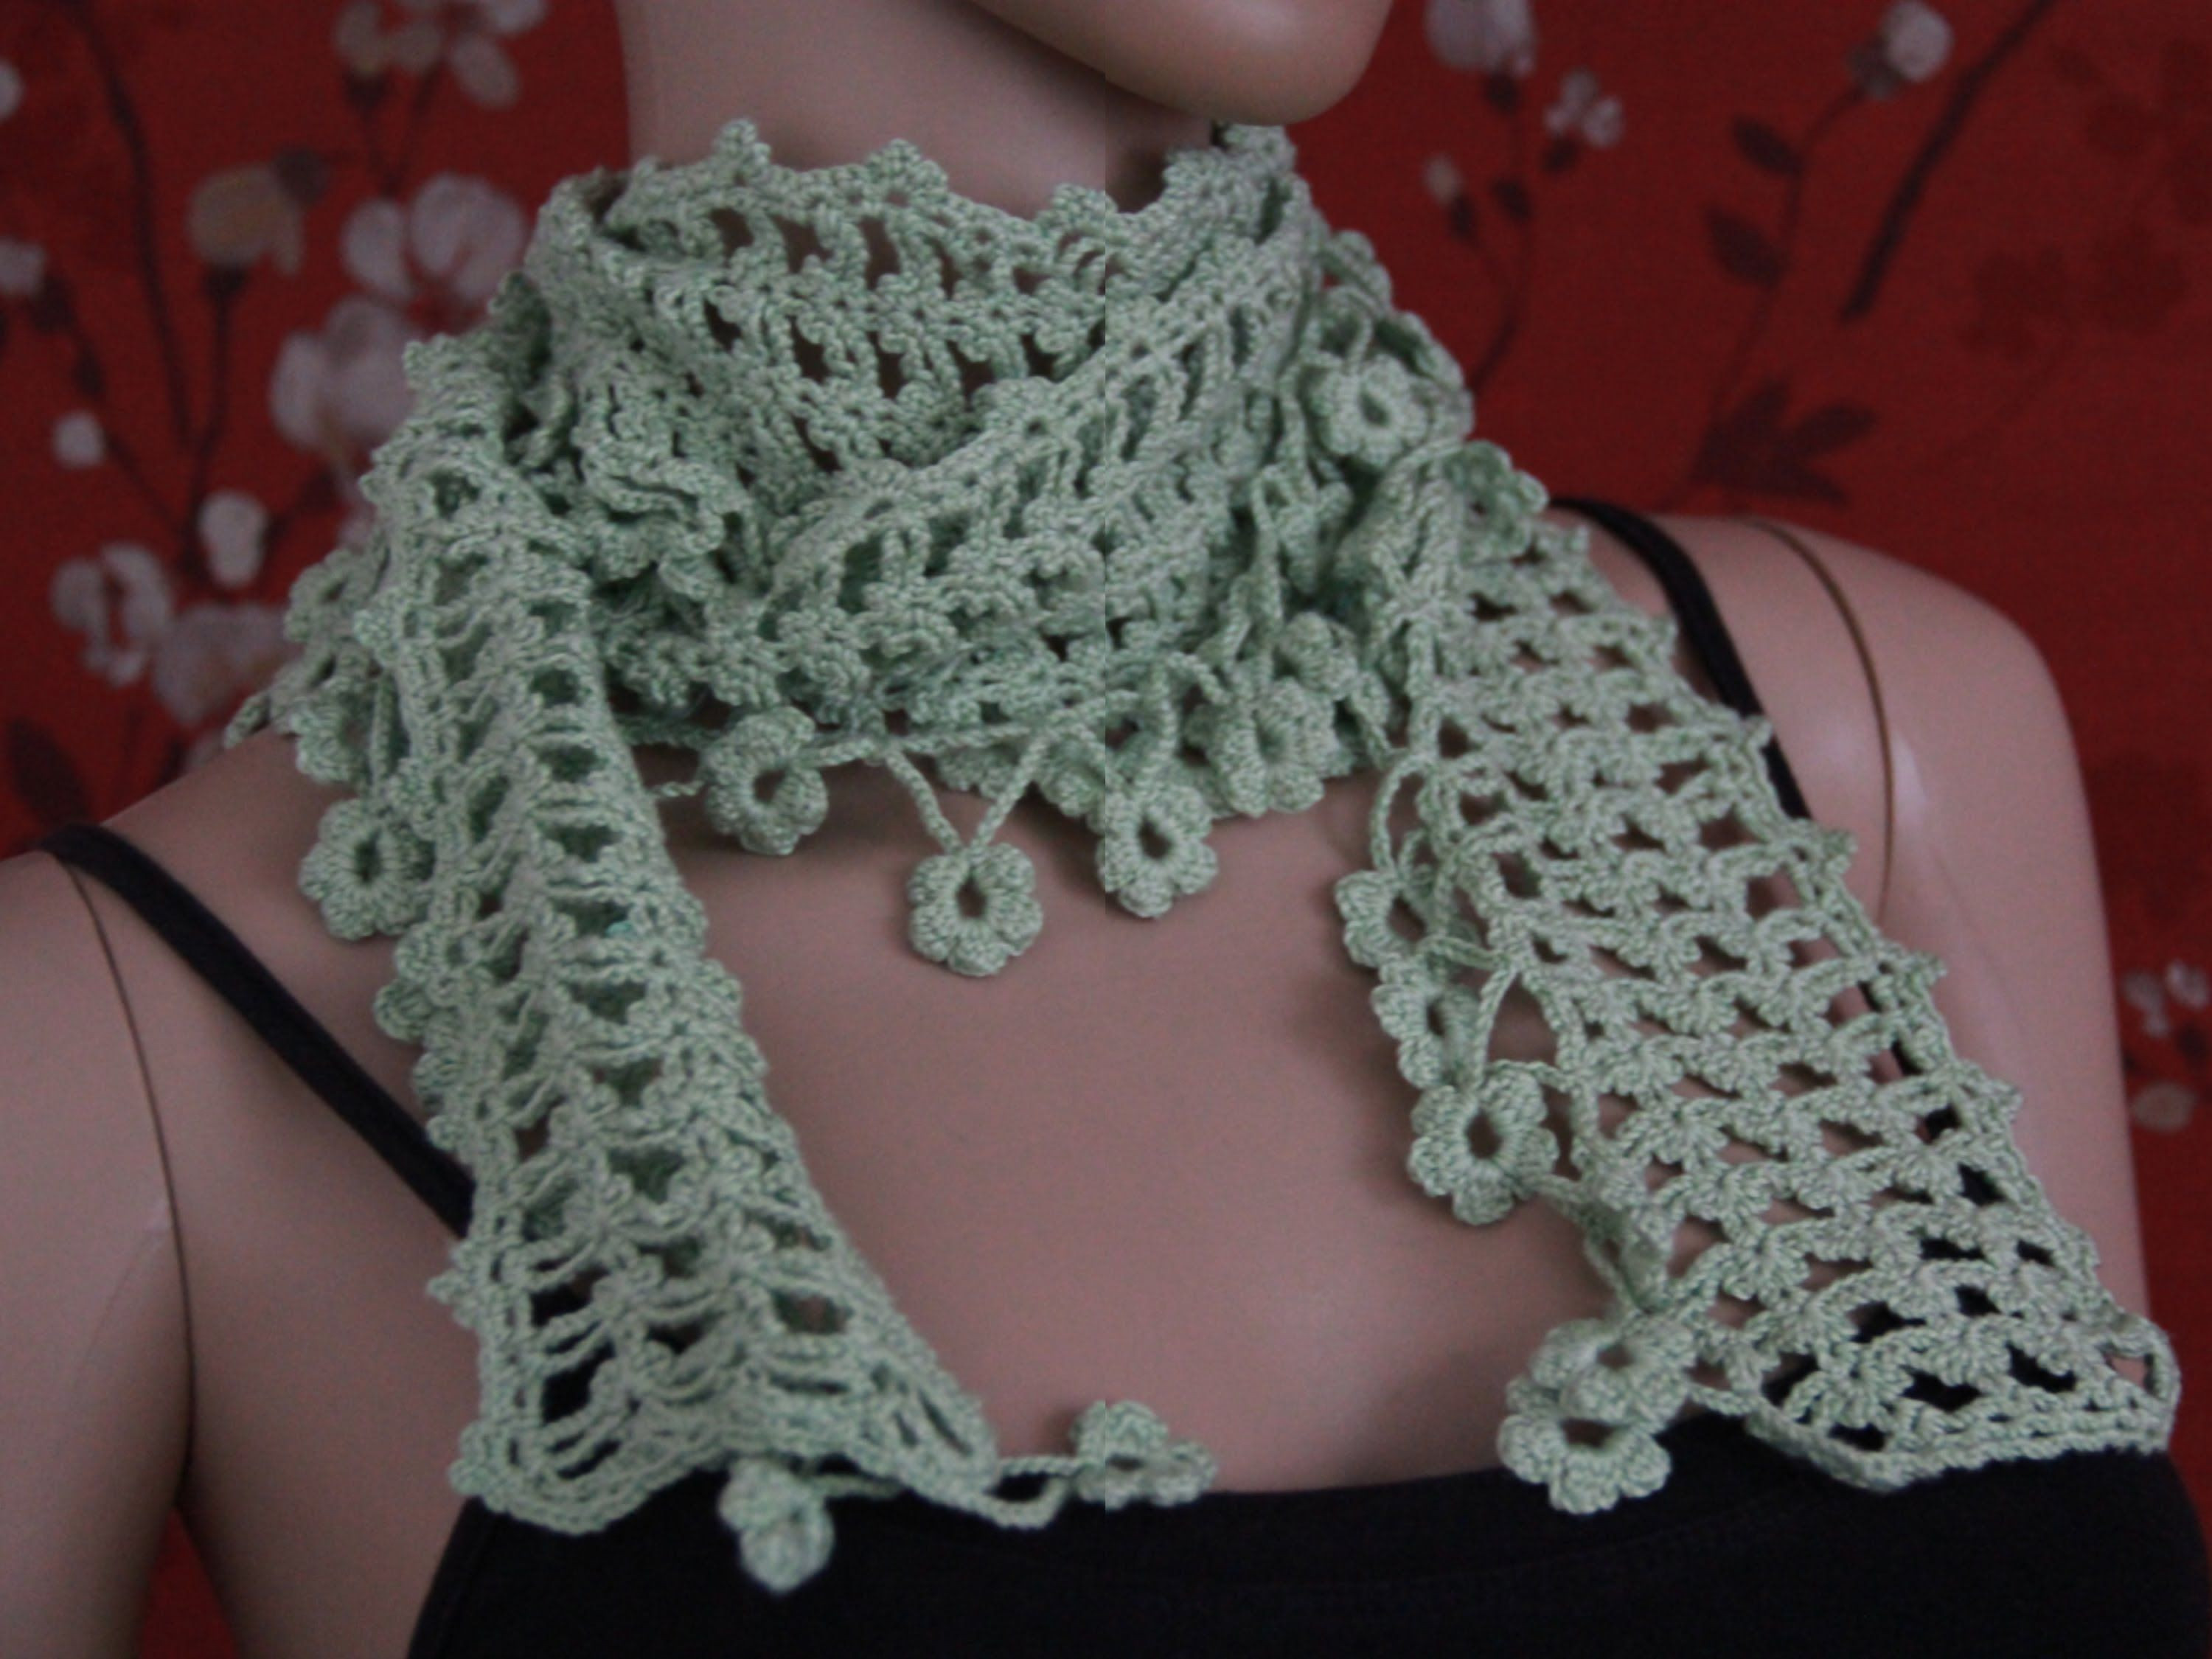 Best Of Crochet Scarf Tutorial Part 1 Of 4 Pattern 4 Crochet Shawl Tutorial Of Attractive 40 Ideas Crochet Shawl Tutorial